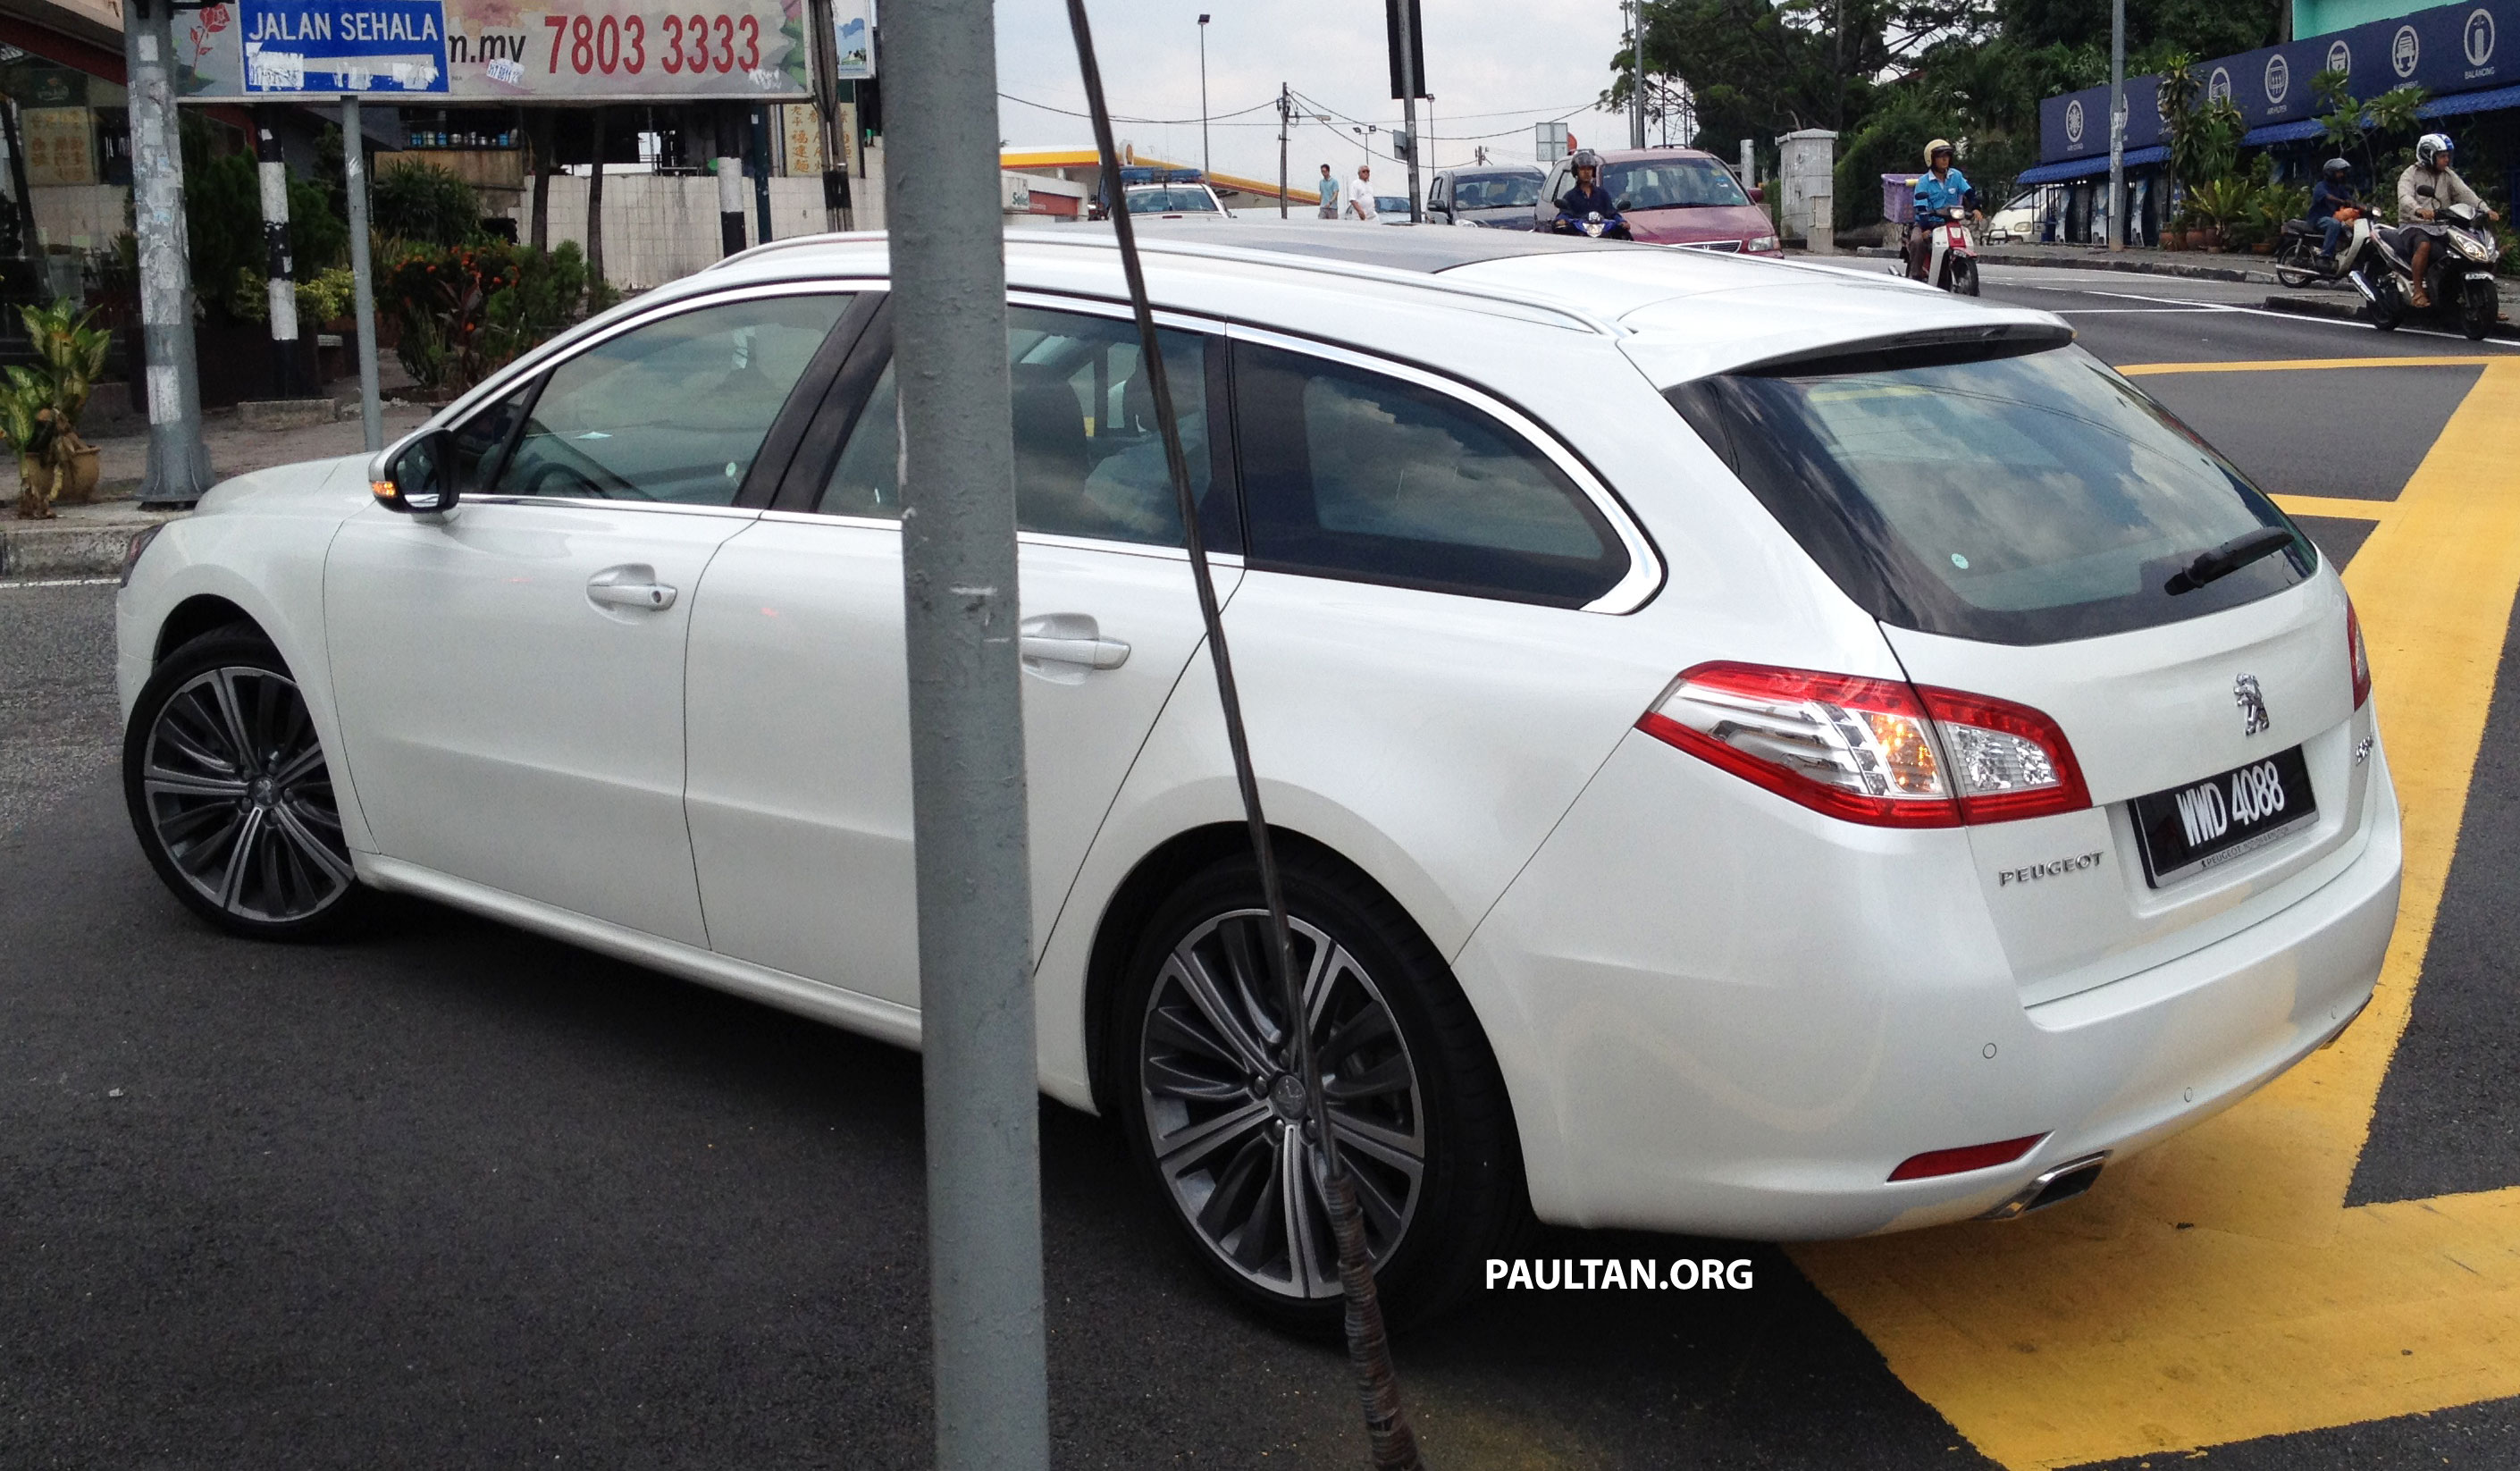 Peugeot 508 2018 >> Peugeot 508 GT wagon with Malaysian plates spotted! Paul Tan - Image 87584